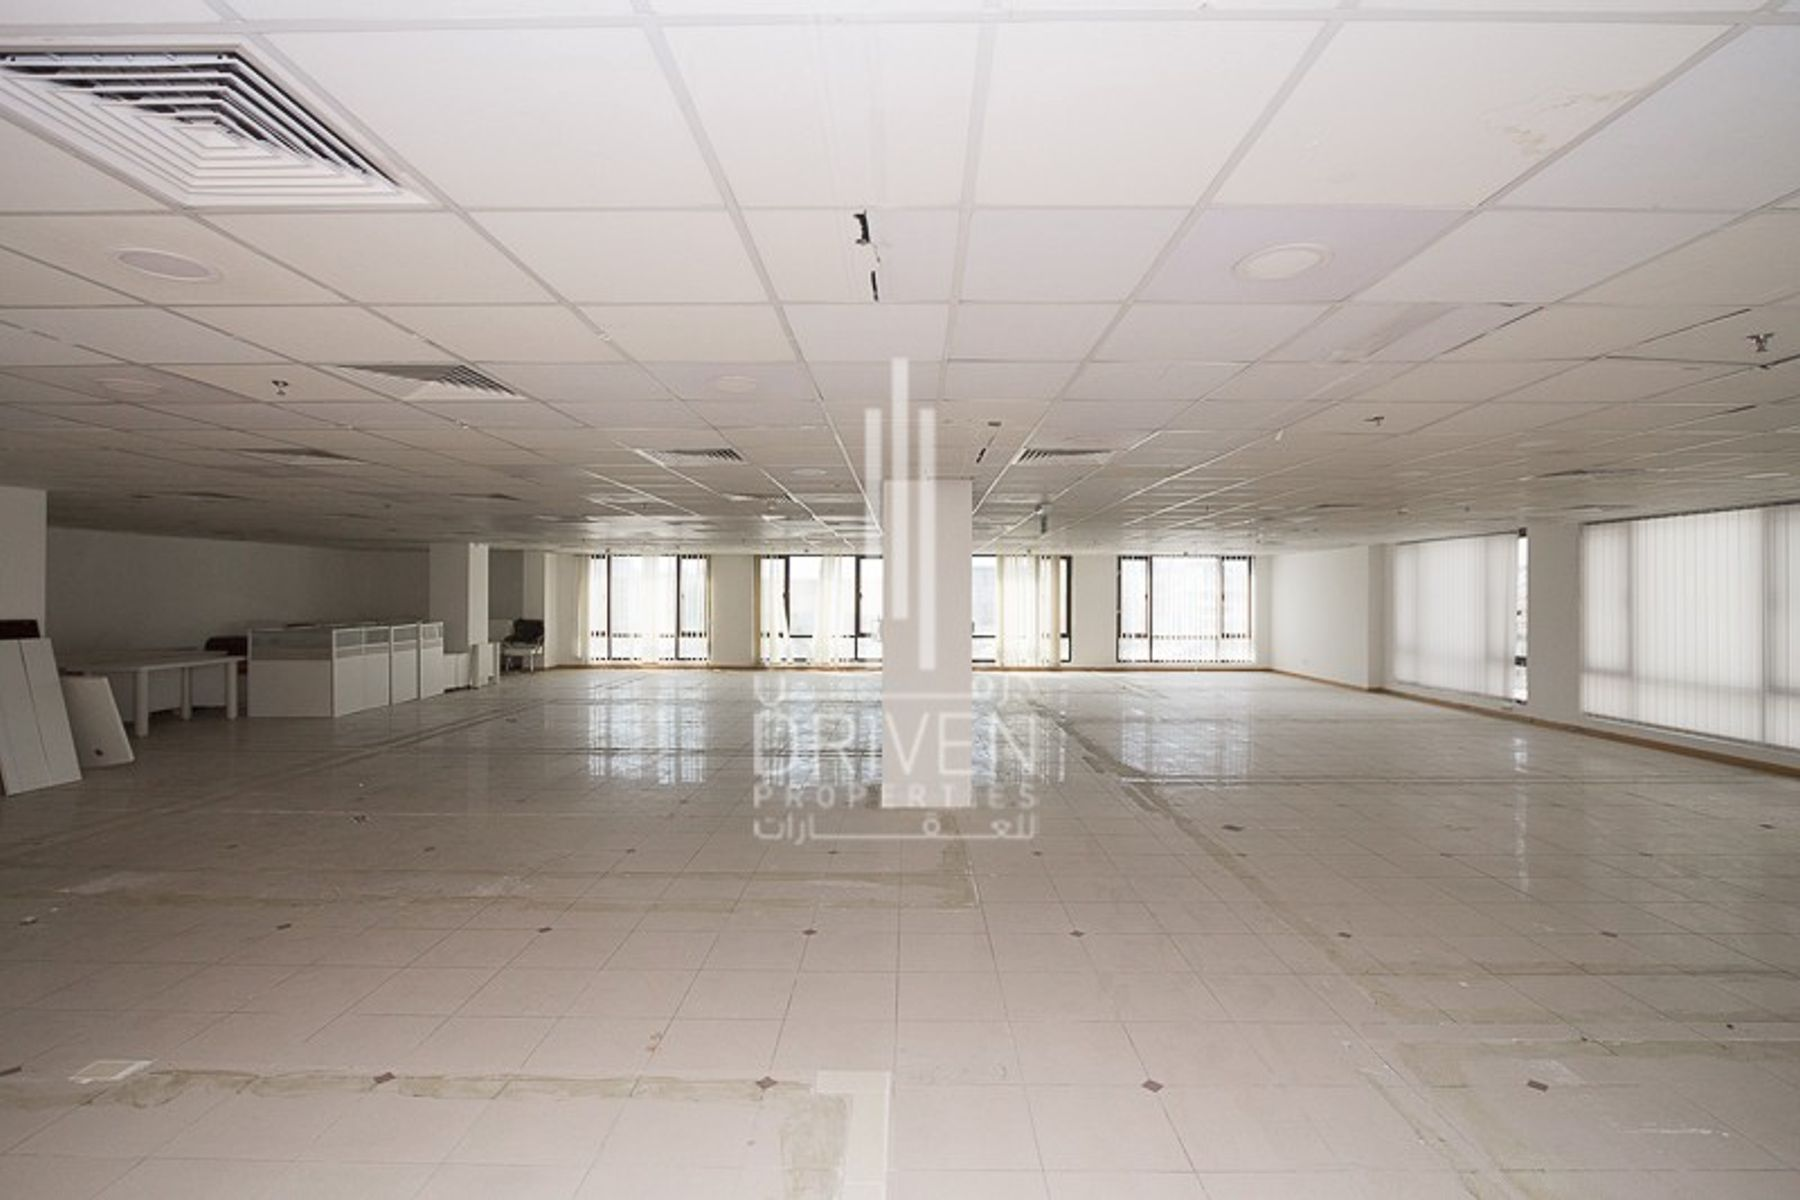 Office for Rent in Dubai National Insurance Building - Sheikh Zayed Road